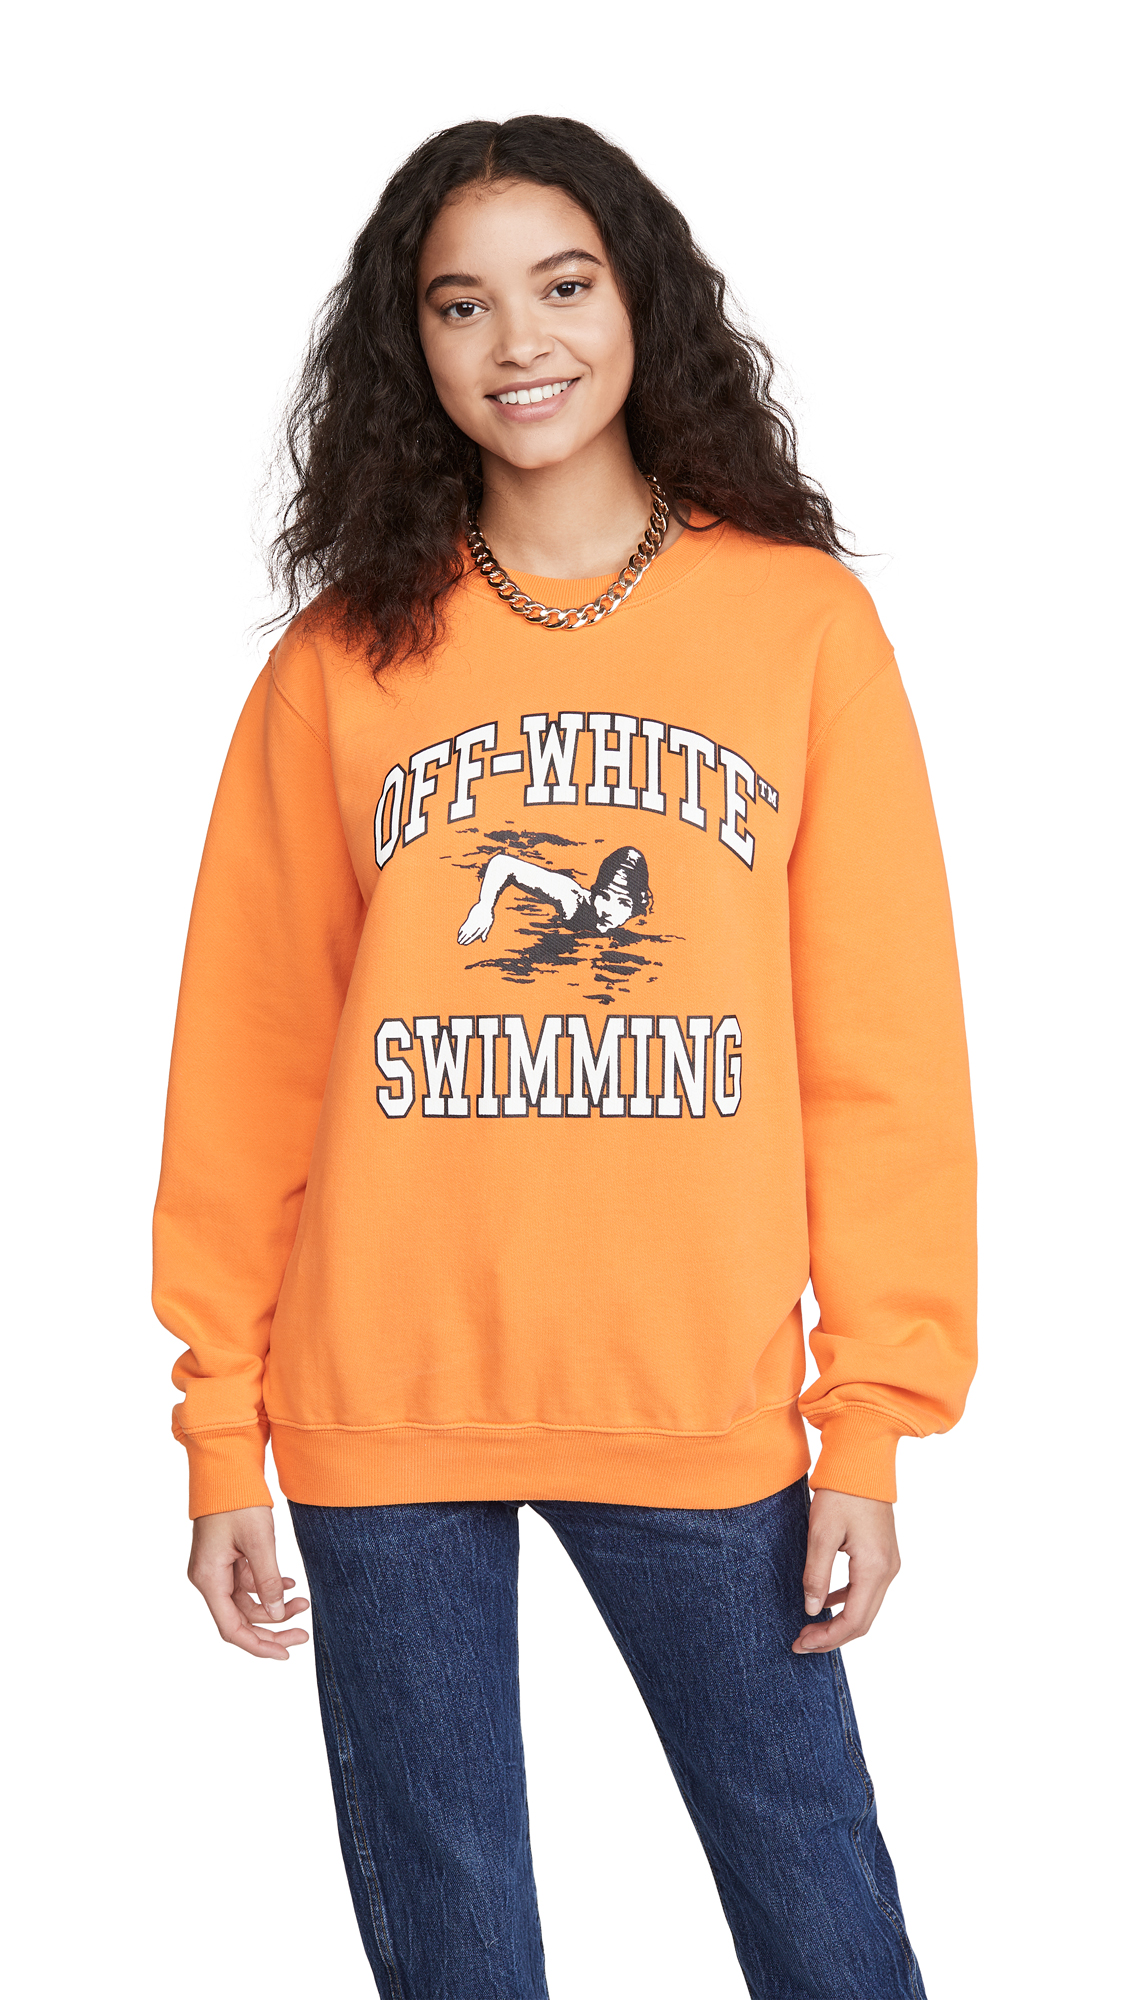 Photo of Off-White Off-White Swimming Crew Neck Sweatshirt - shop Off-White Clothing, Shirts, Tops online